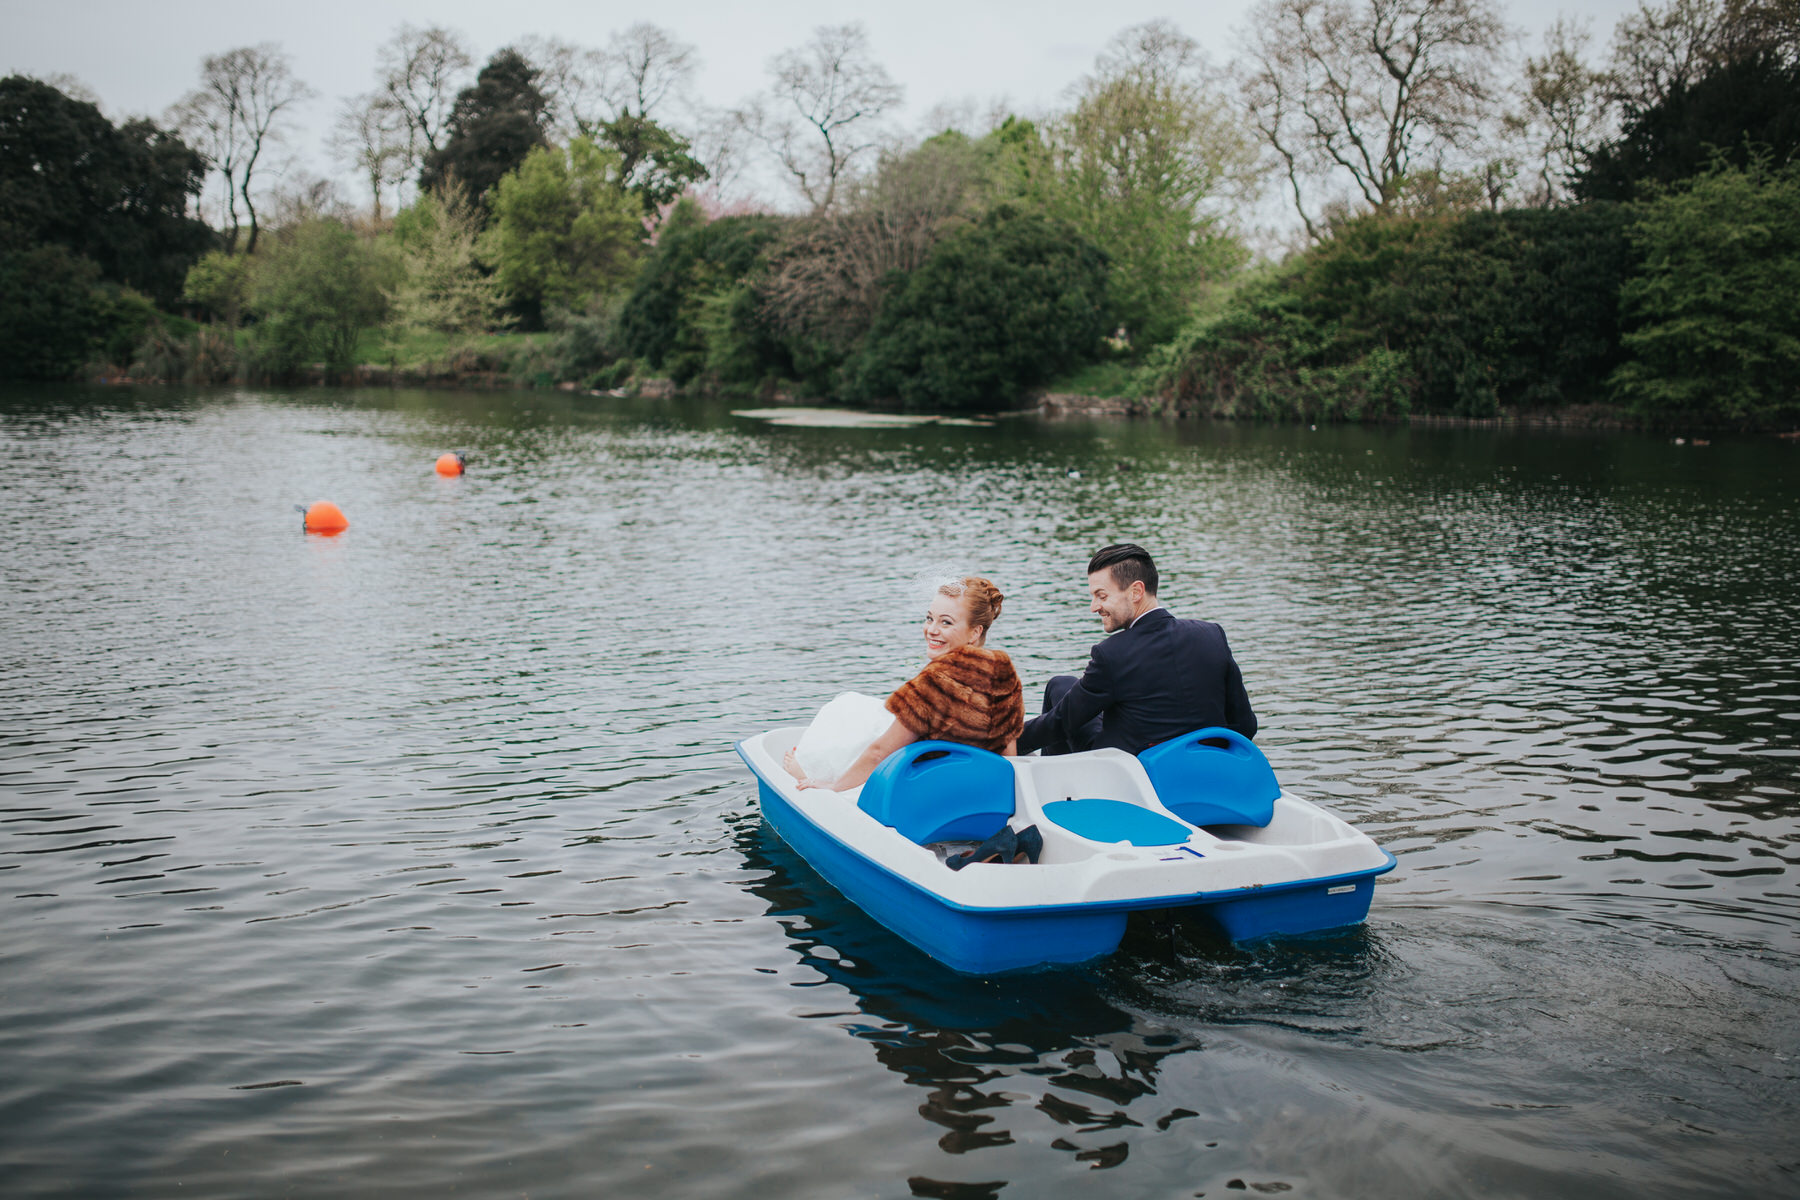 184-Victoria-park-alternative-wedding-couple-pedalo.jpg